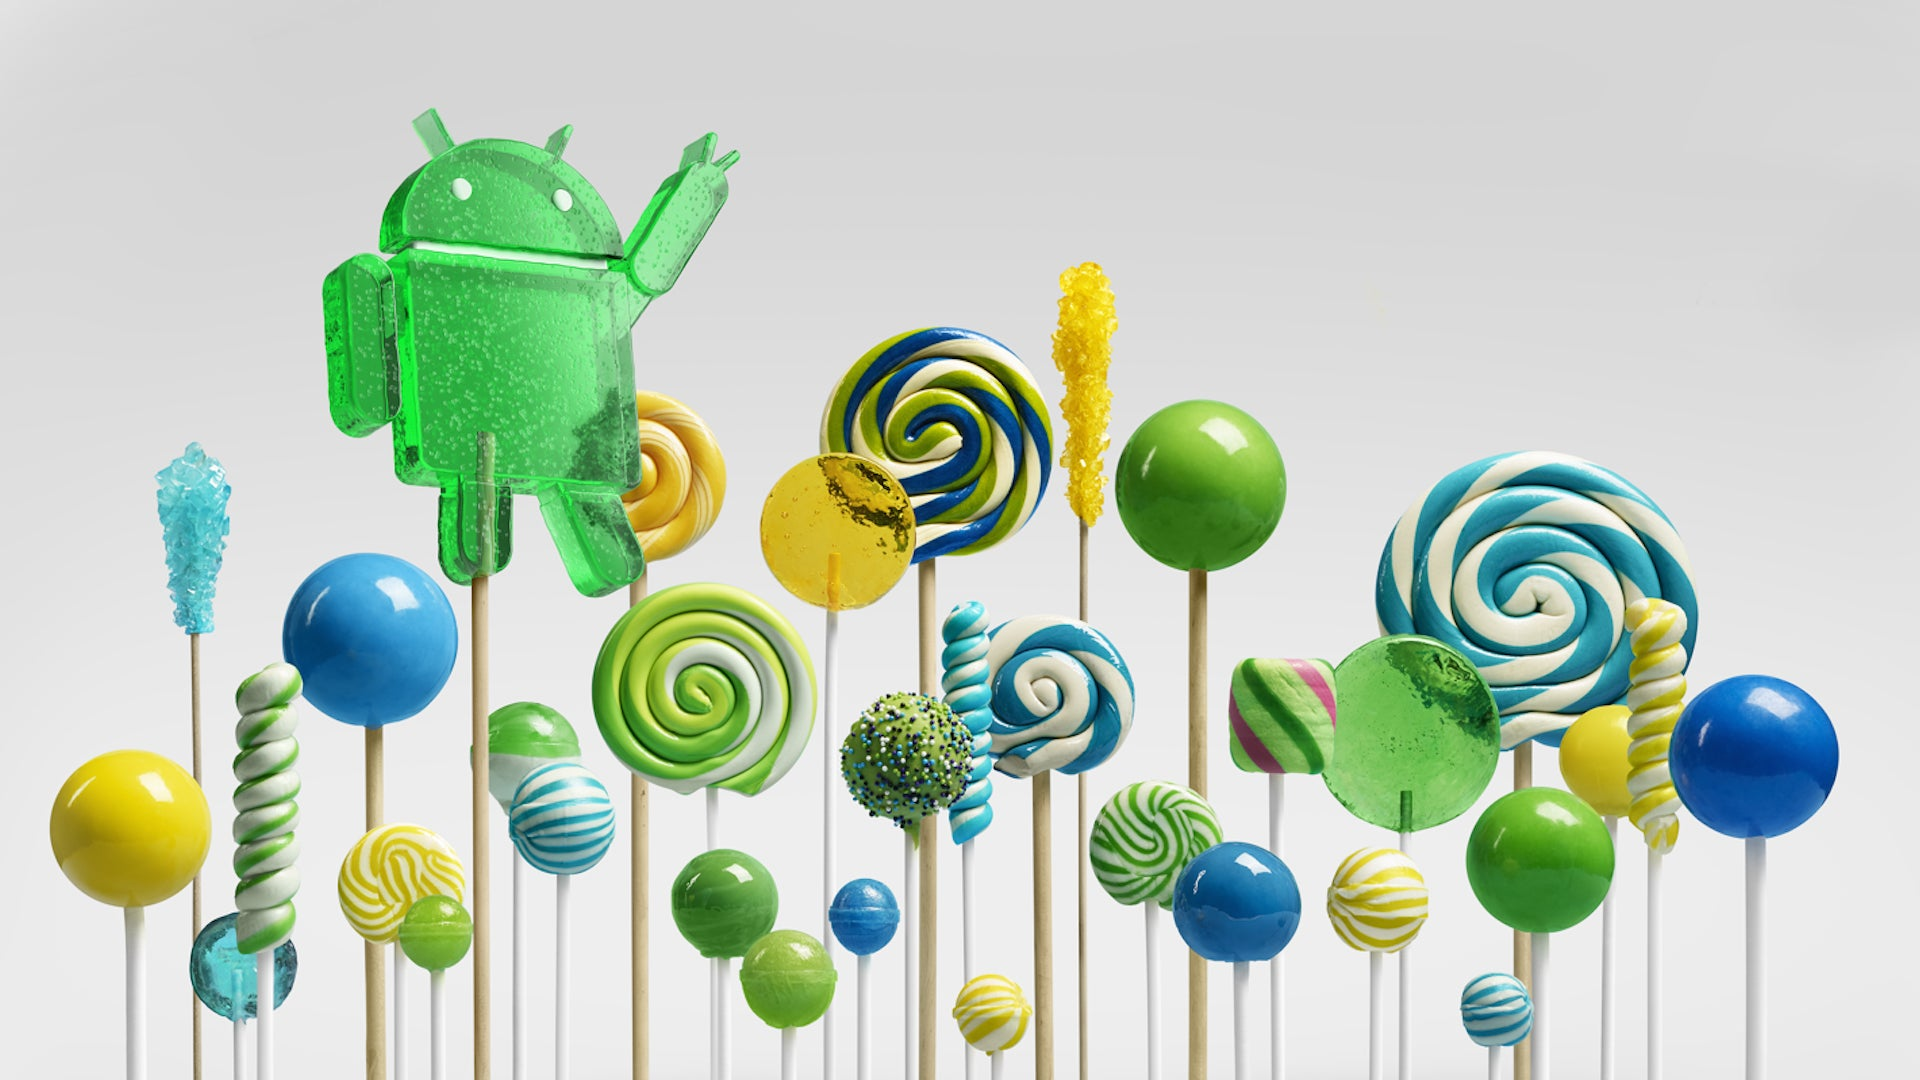 Weekly Wallpaper: Celebrate Android L With These Lollipop Wallpapers